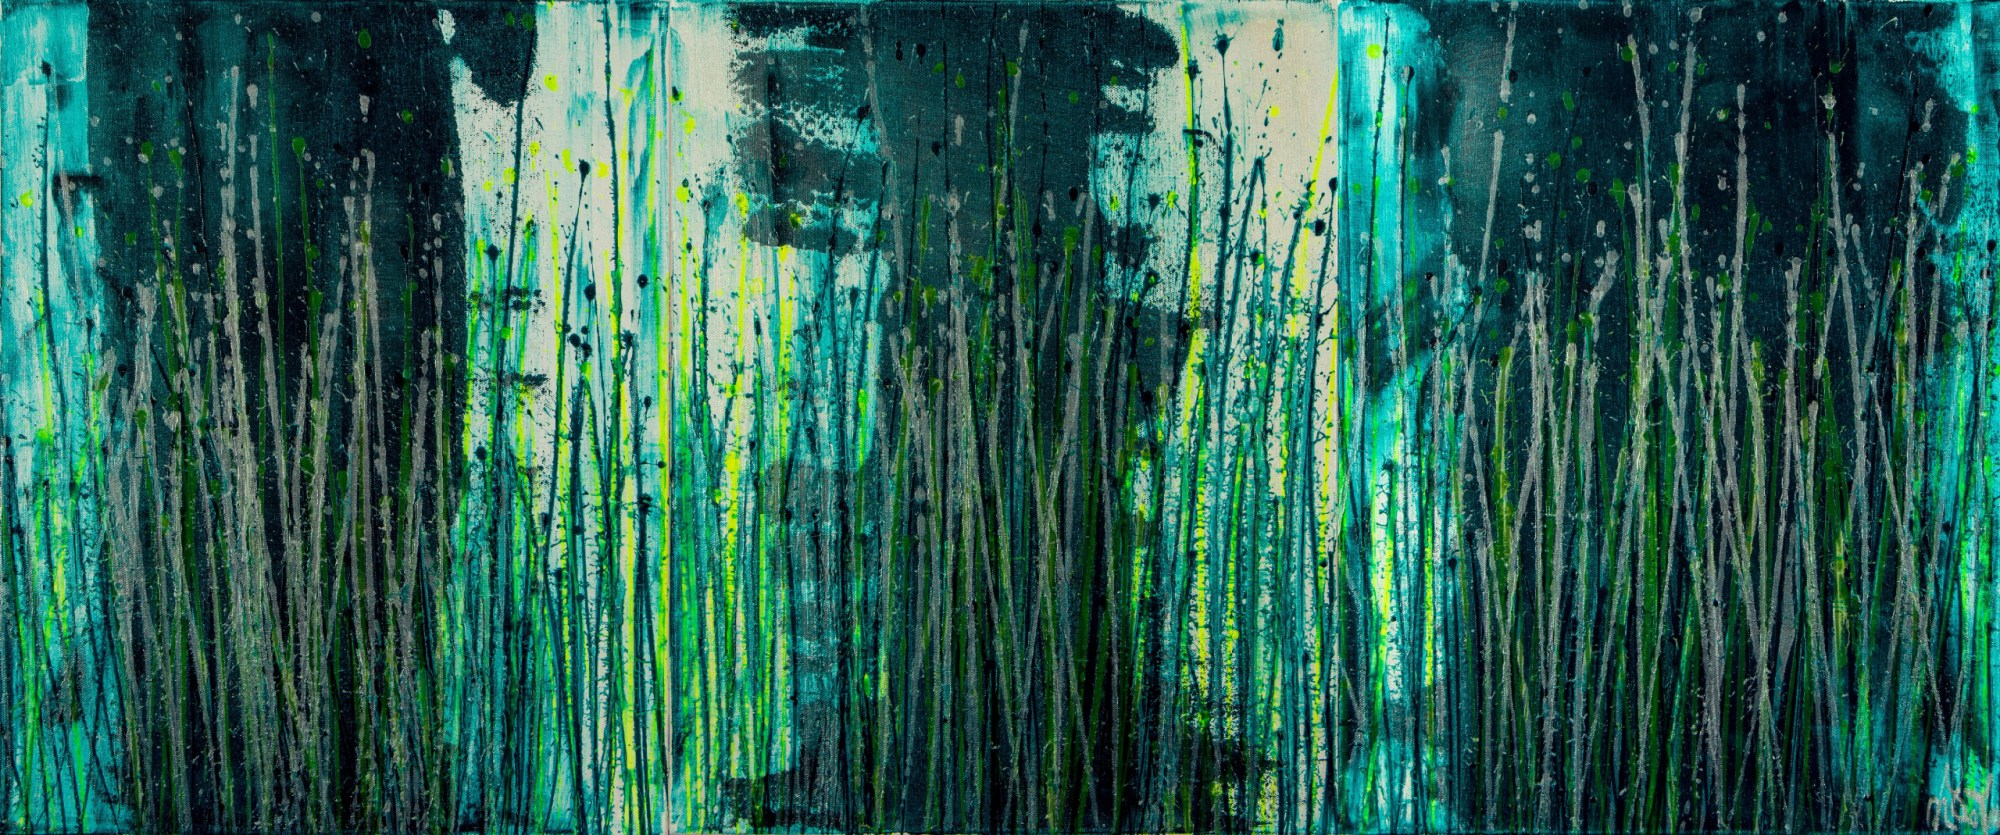 Vernal Garden (With Green and Silver) (2021) - Triptych